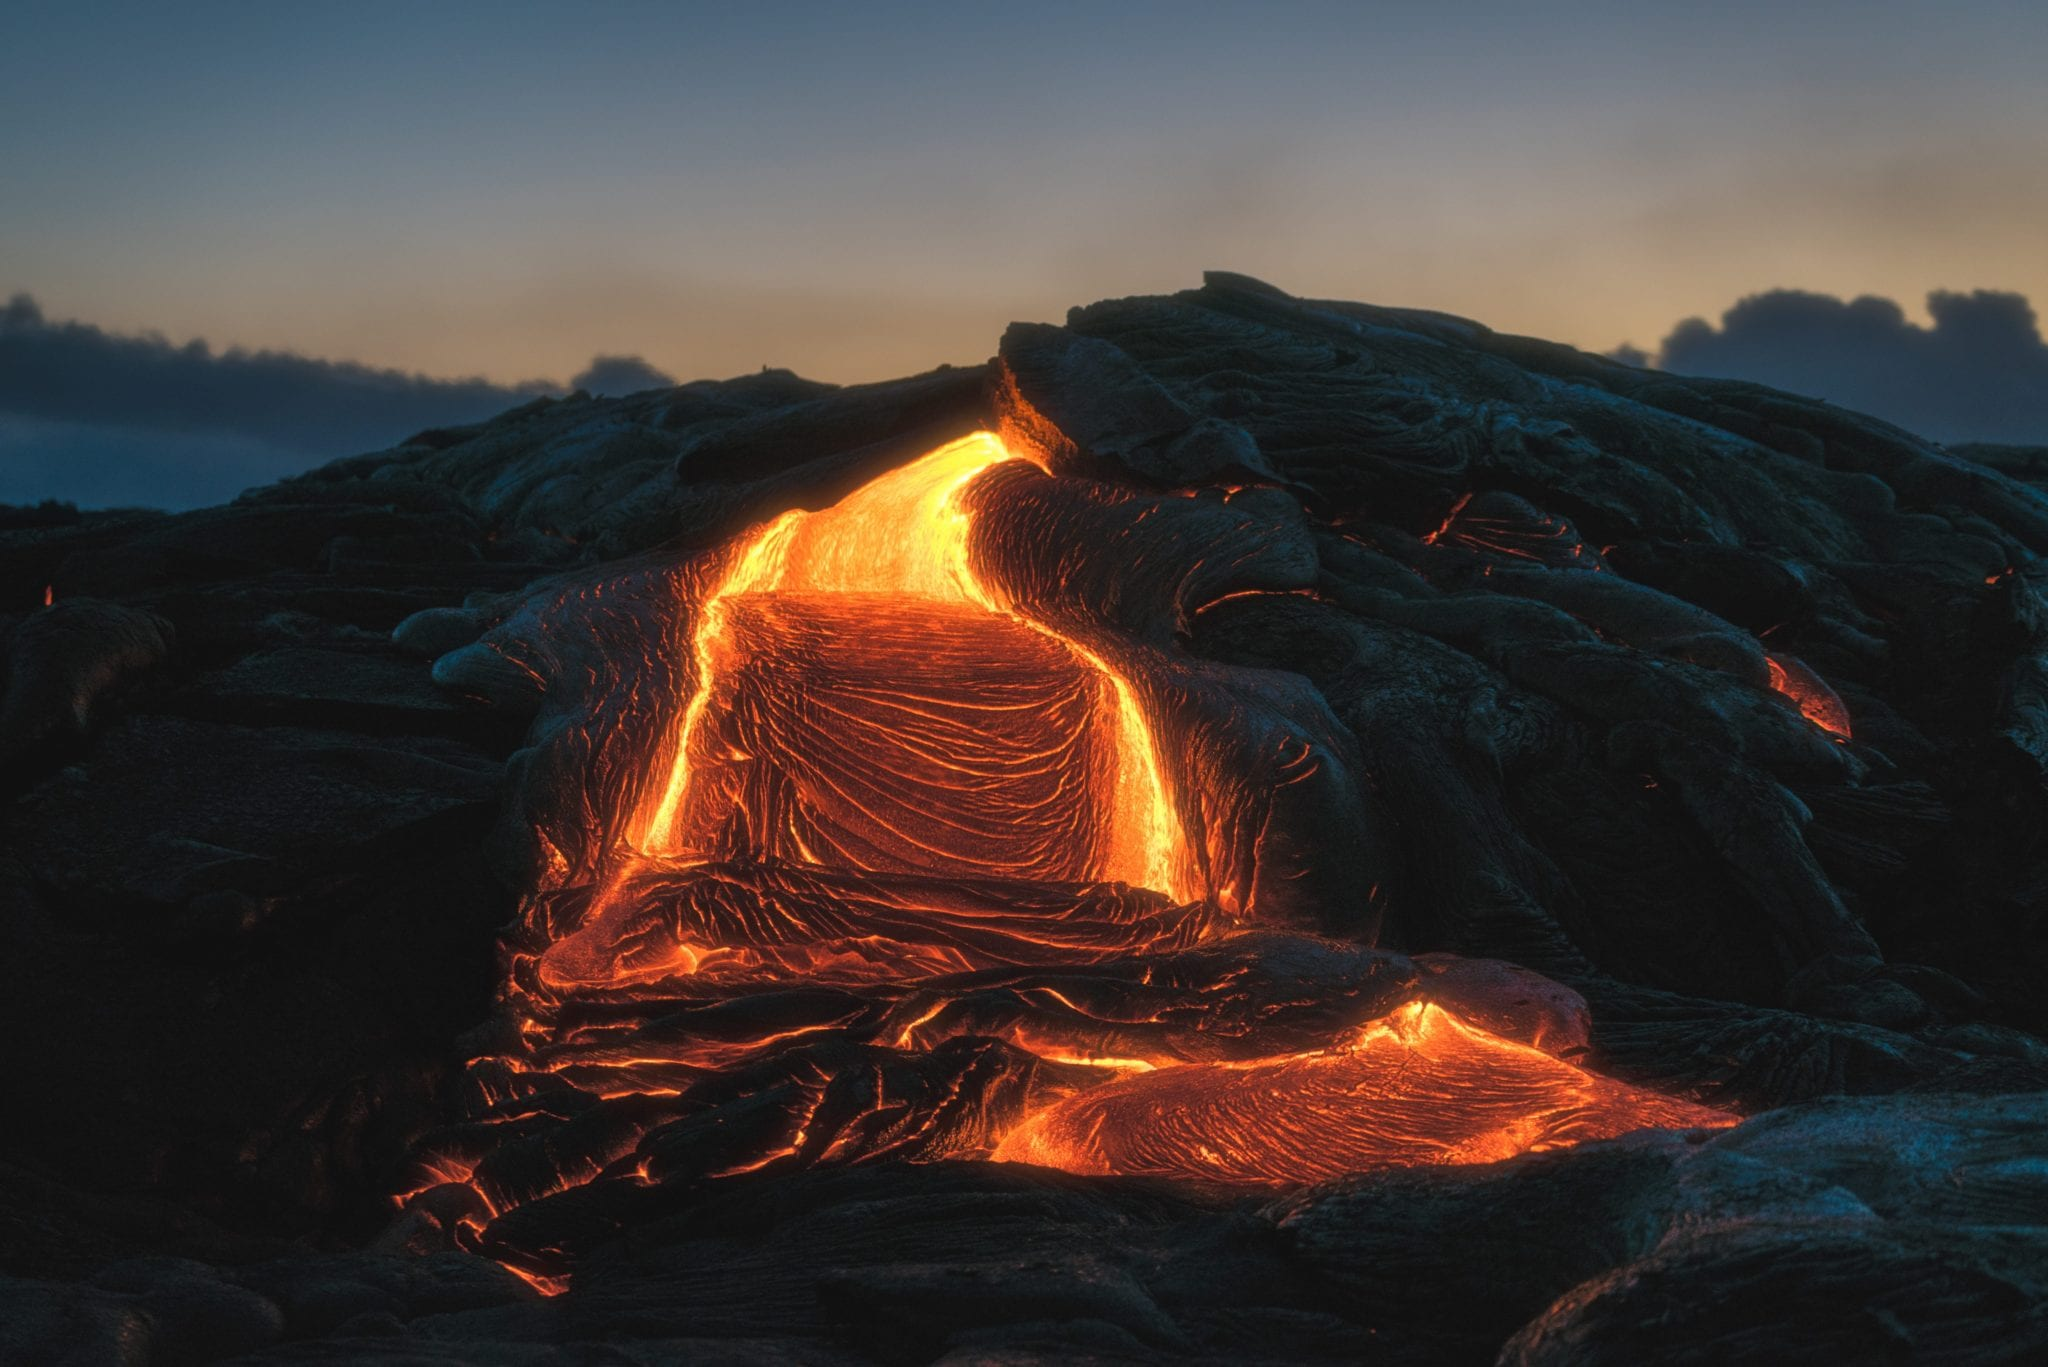 kilauea volcano business funding relief